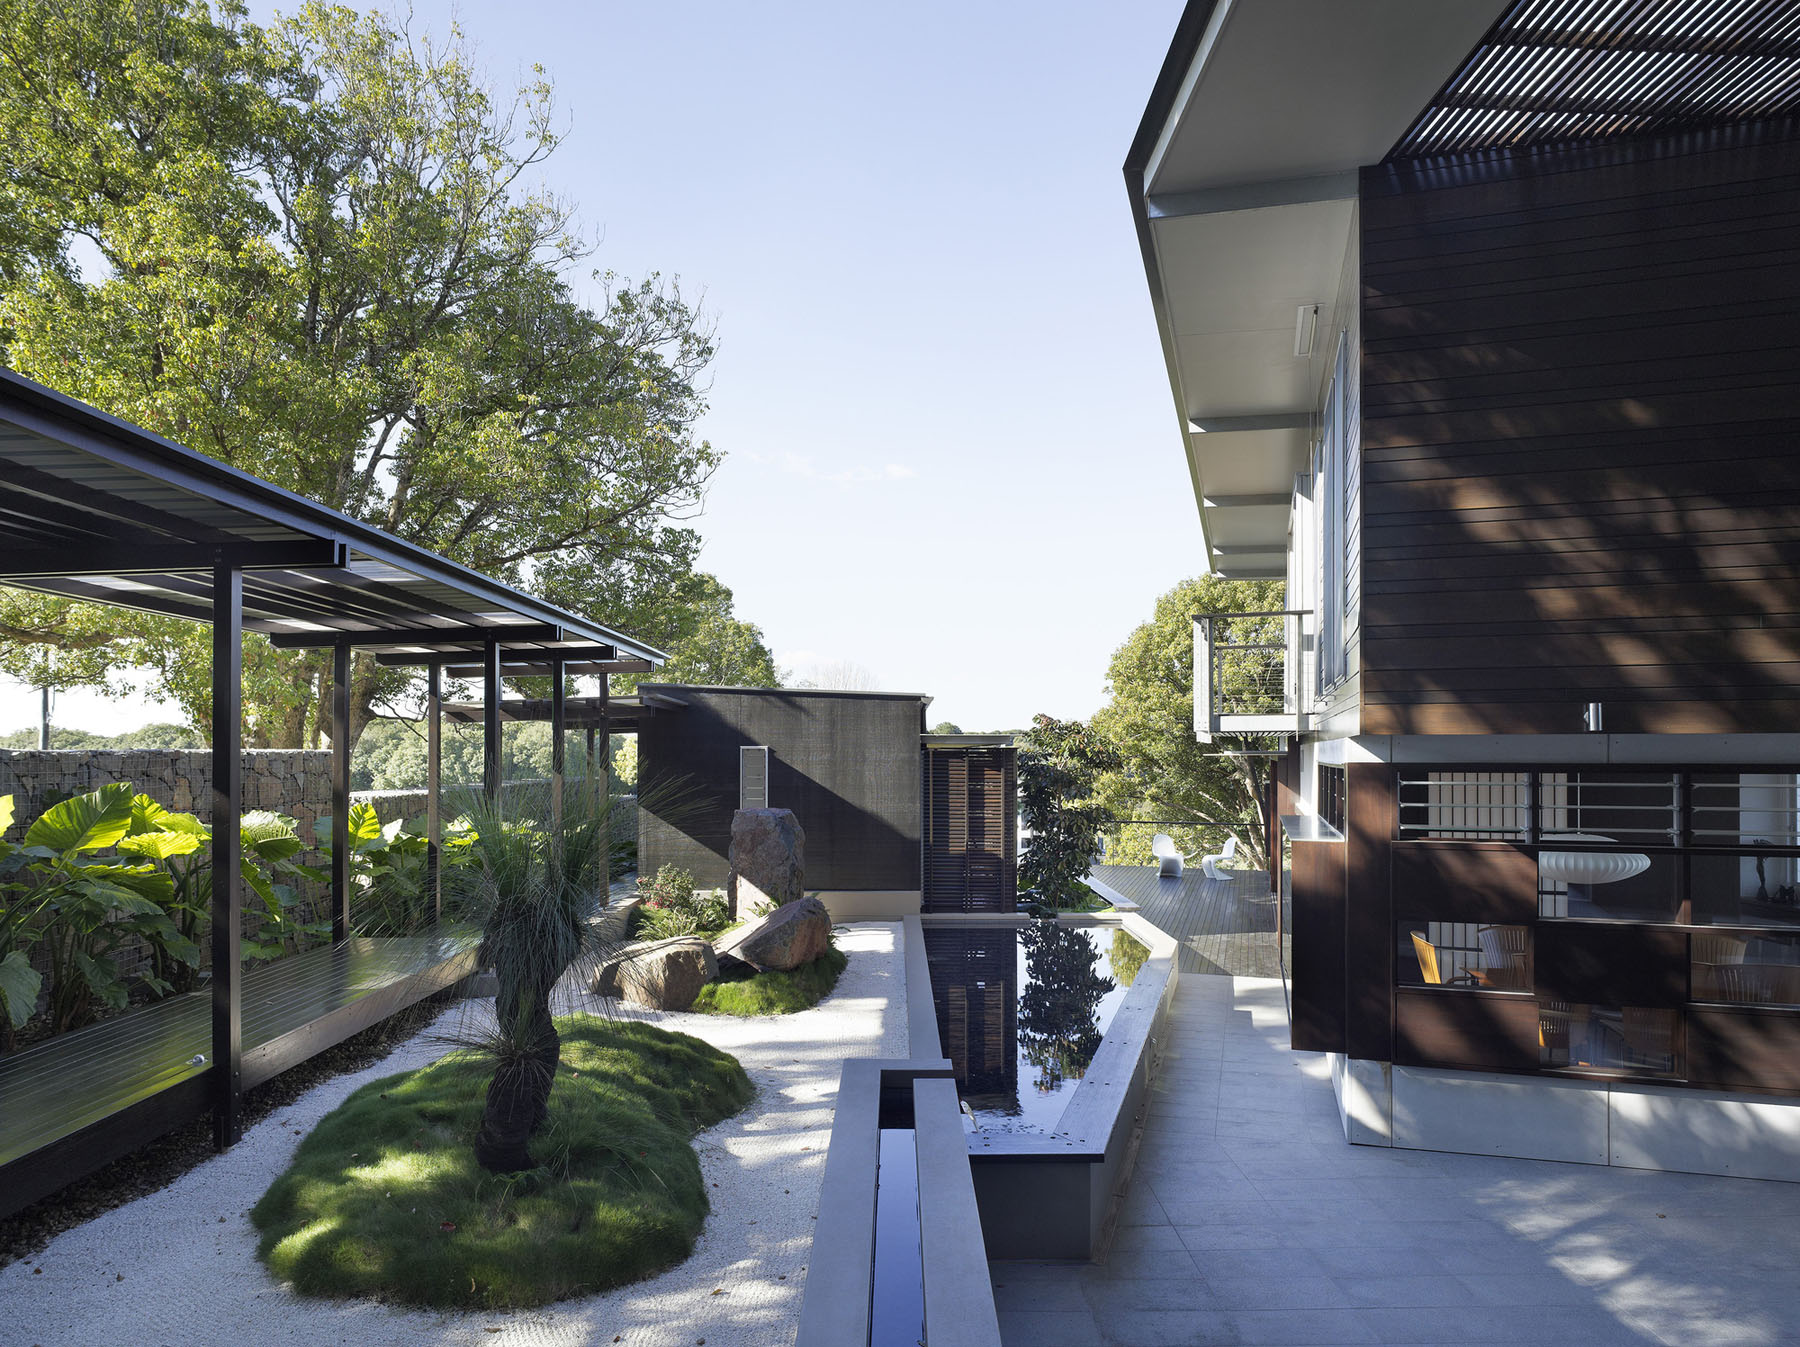 Courtyard Sanctuary with Japanese Influence